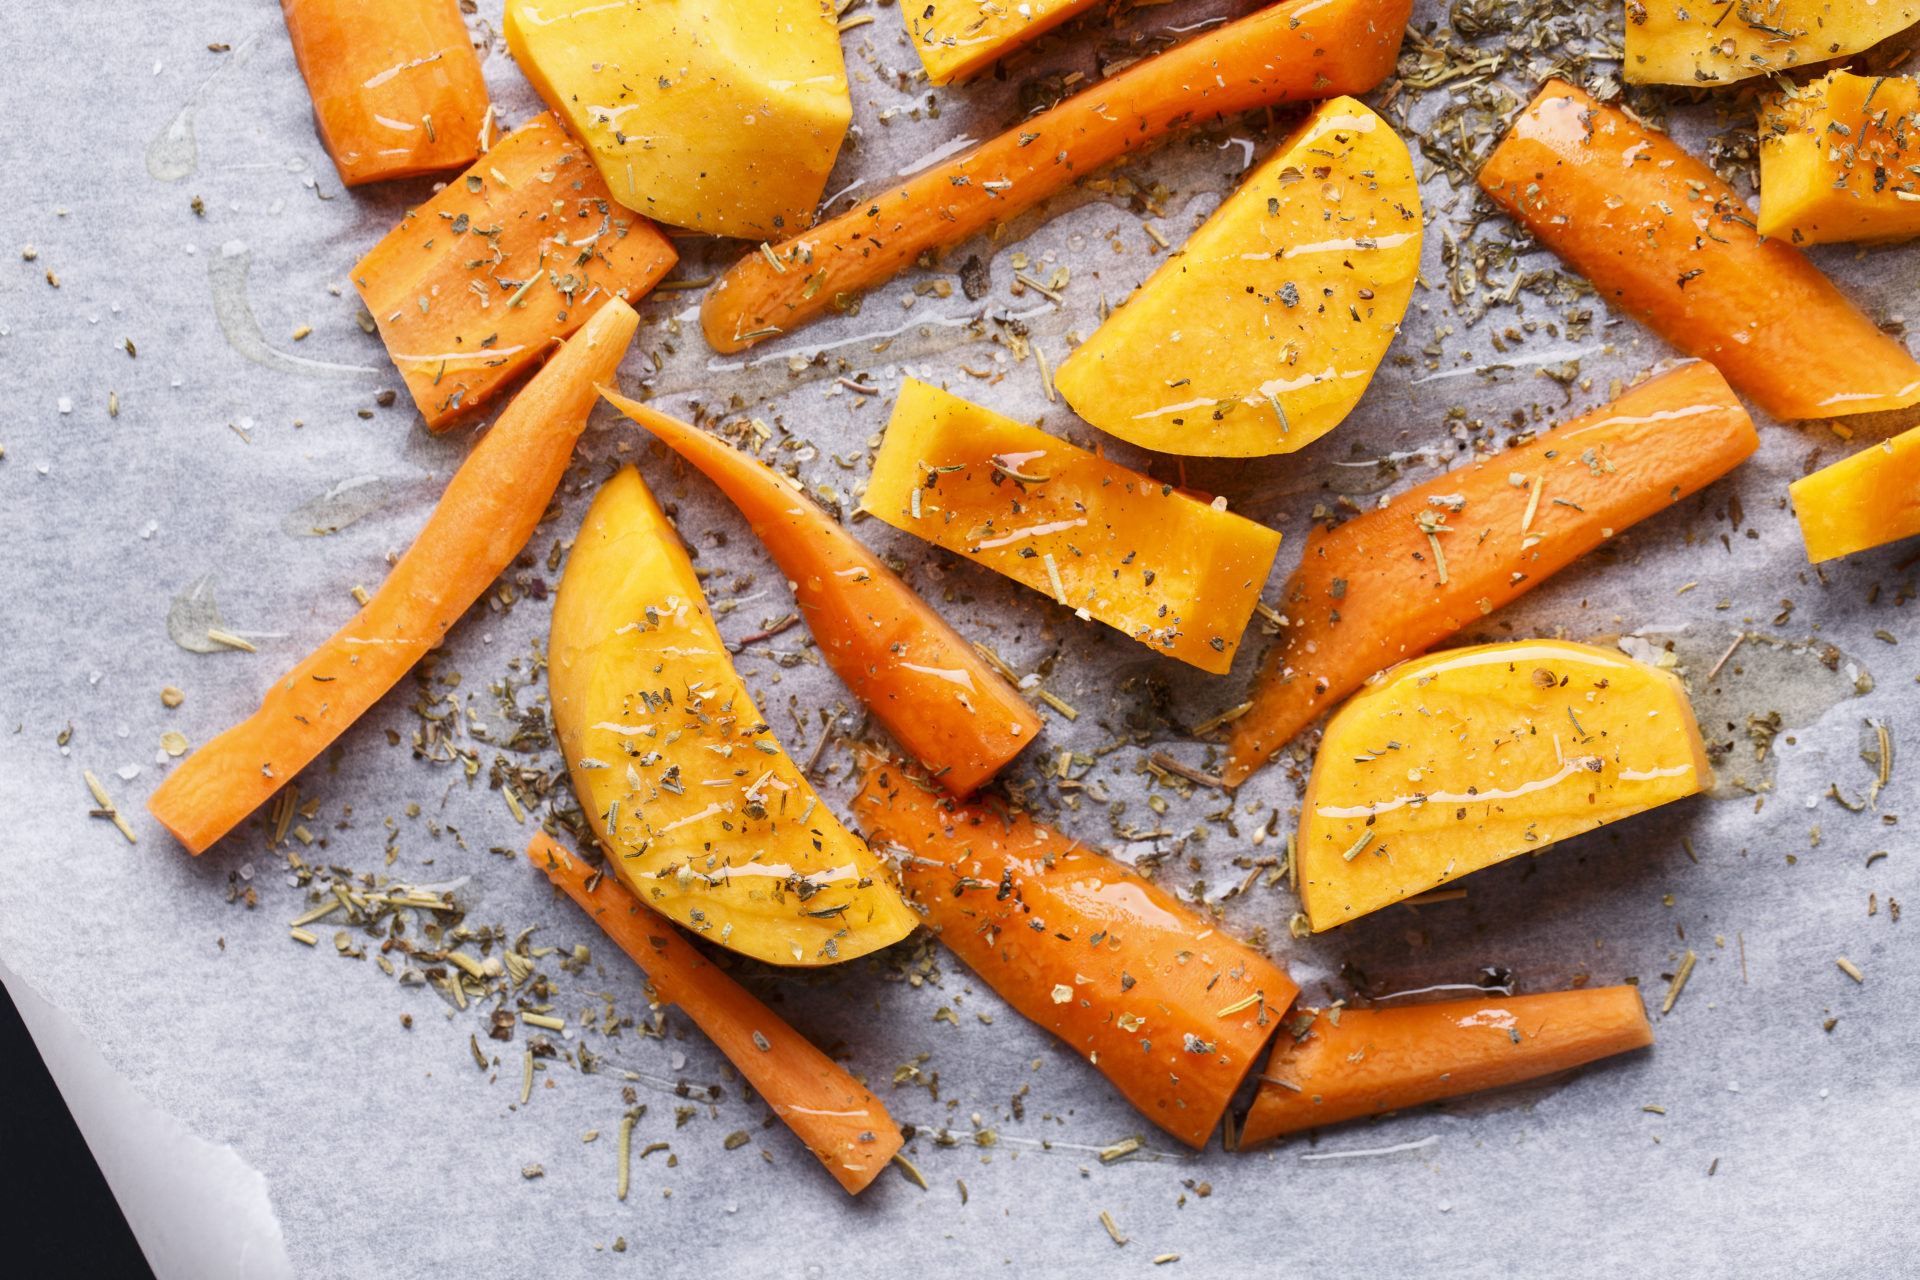 Chopped,Fresh,Carrot,And,Pumpkin,With,Herbs,And,Olive,Oil.